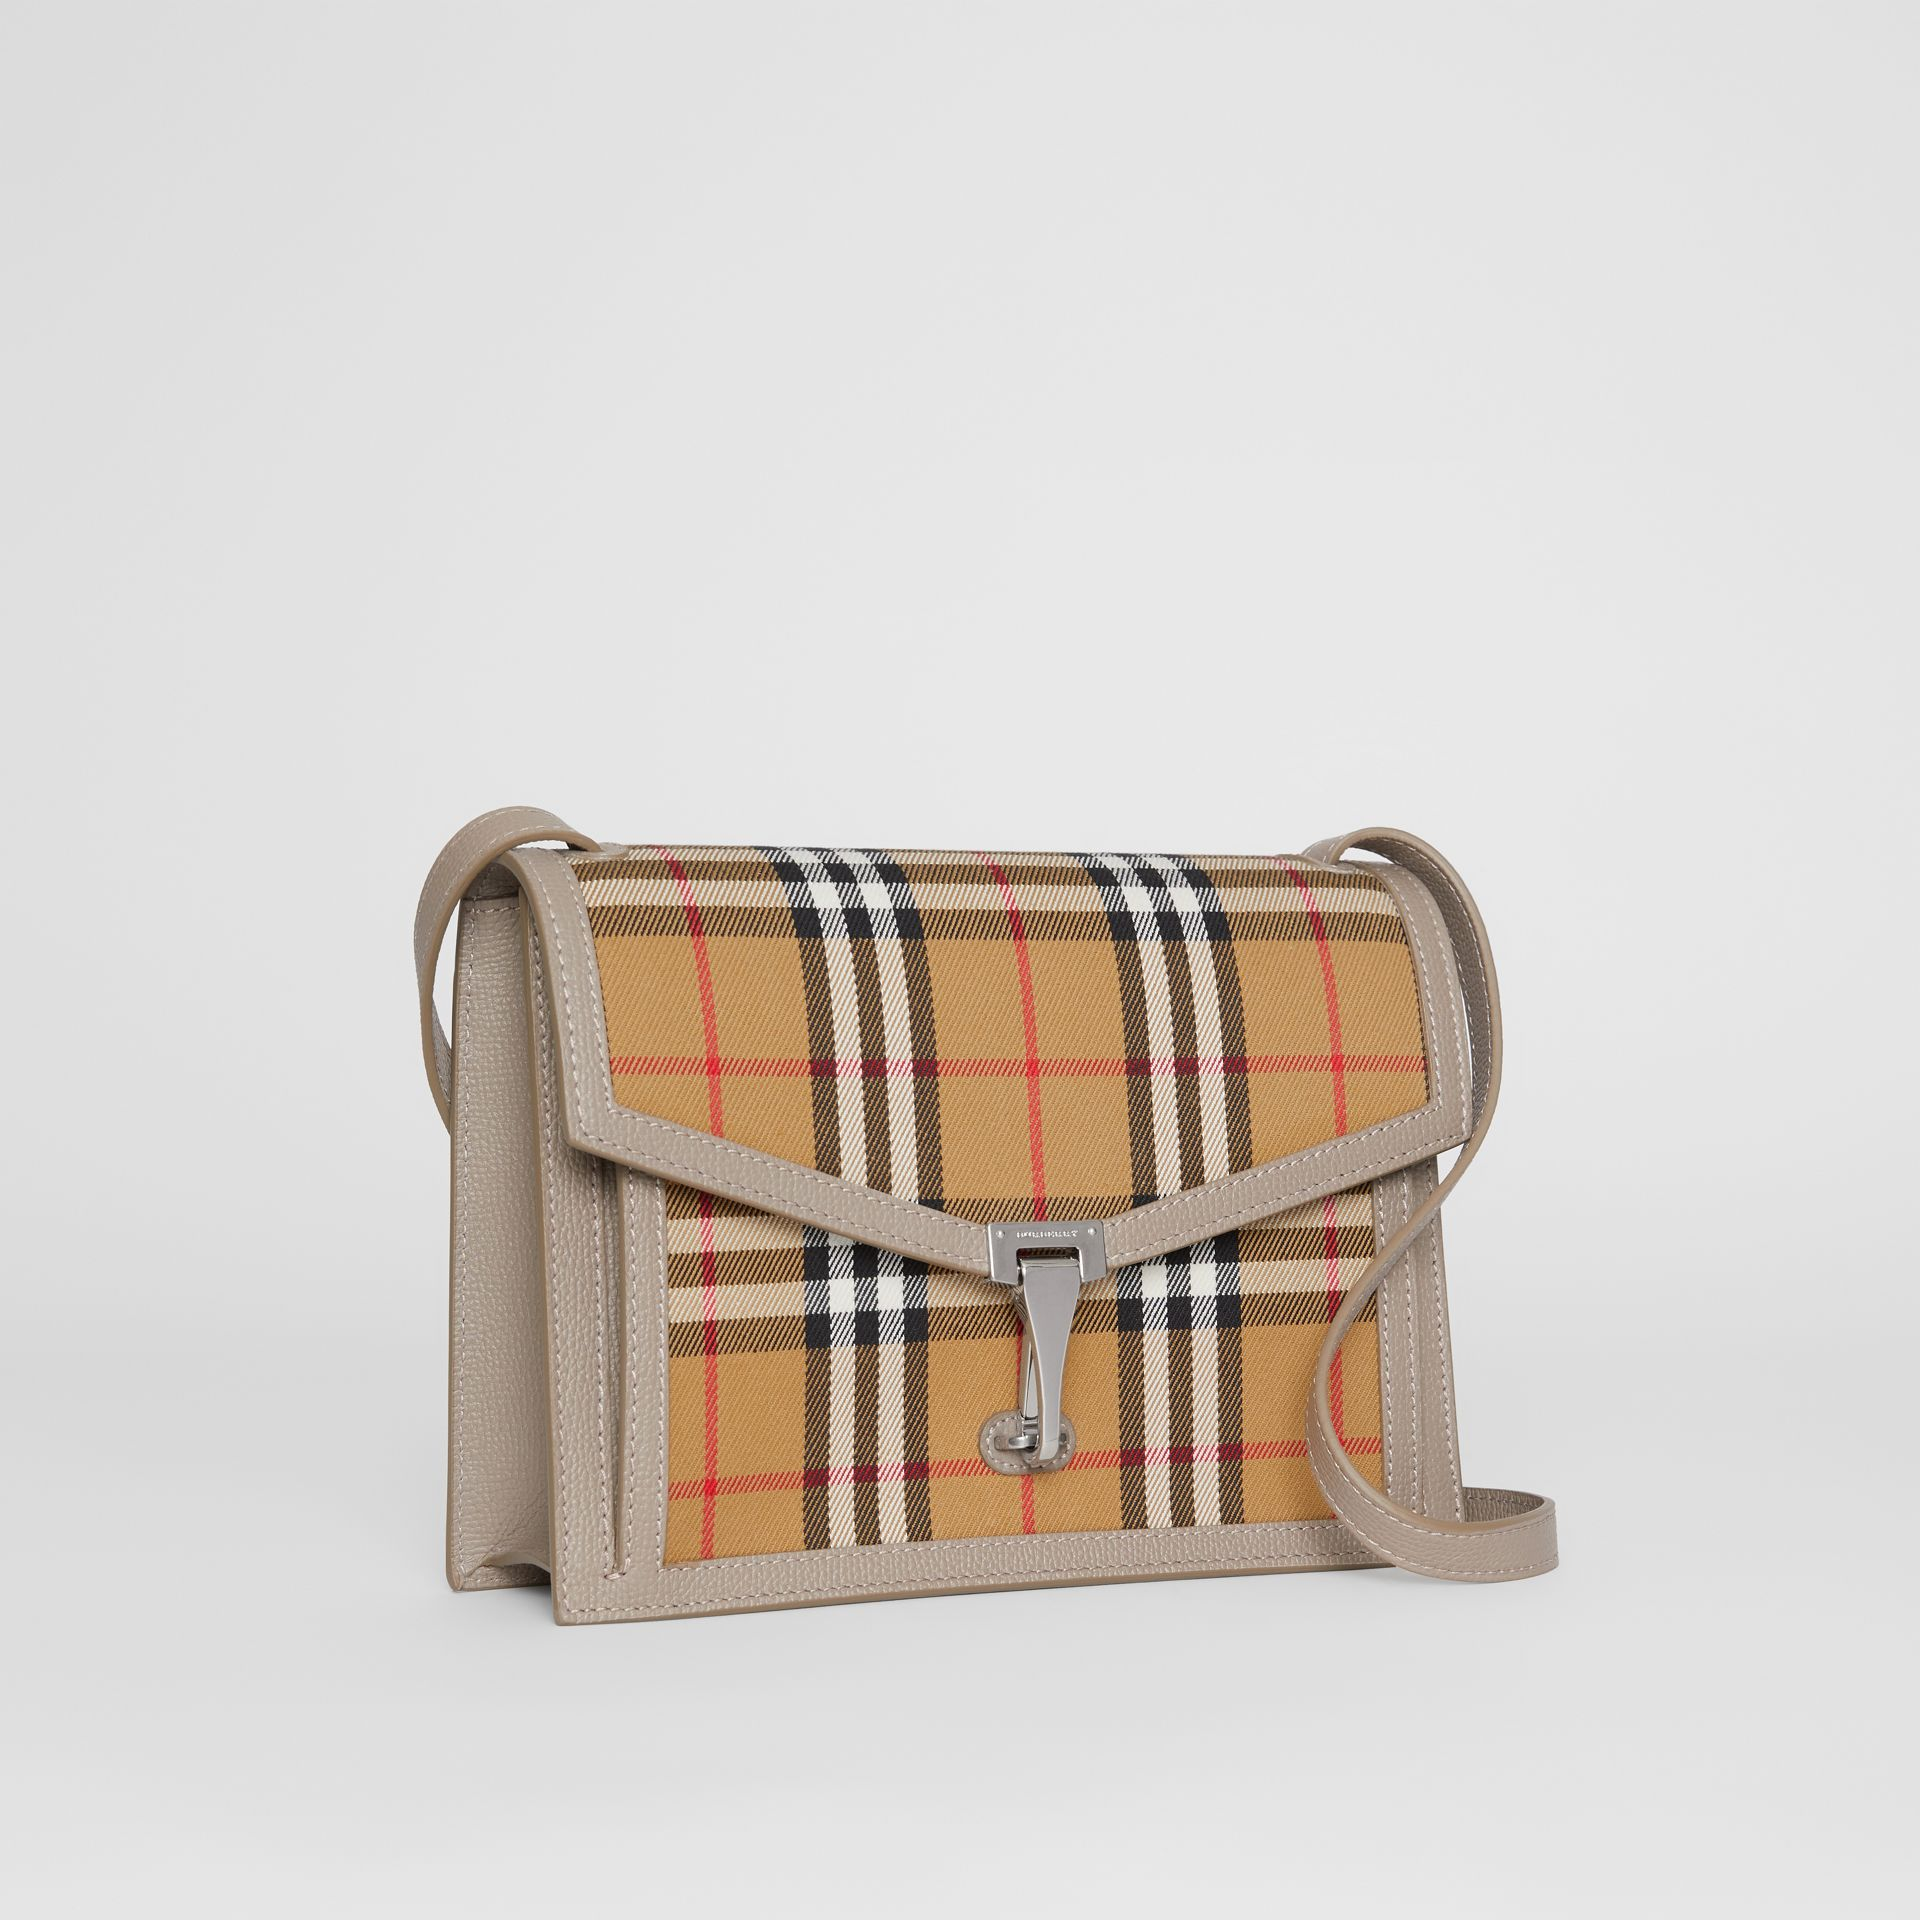 Small Vintage Check and Leather Crossbody Bag in Taupe Brown - Women | Burberry - gallery image 6